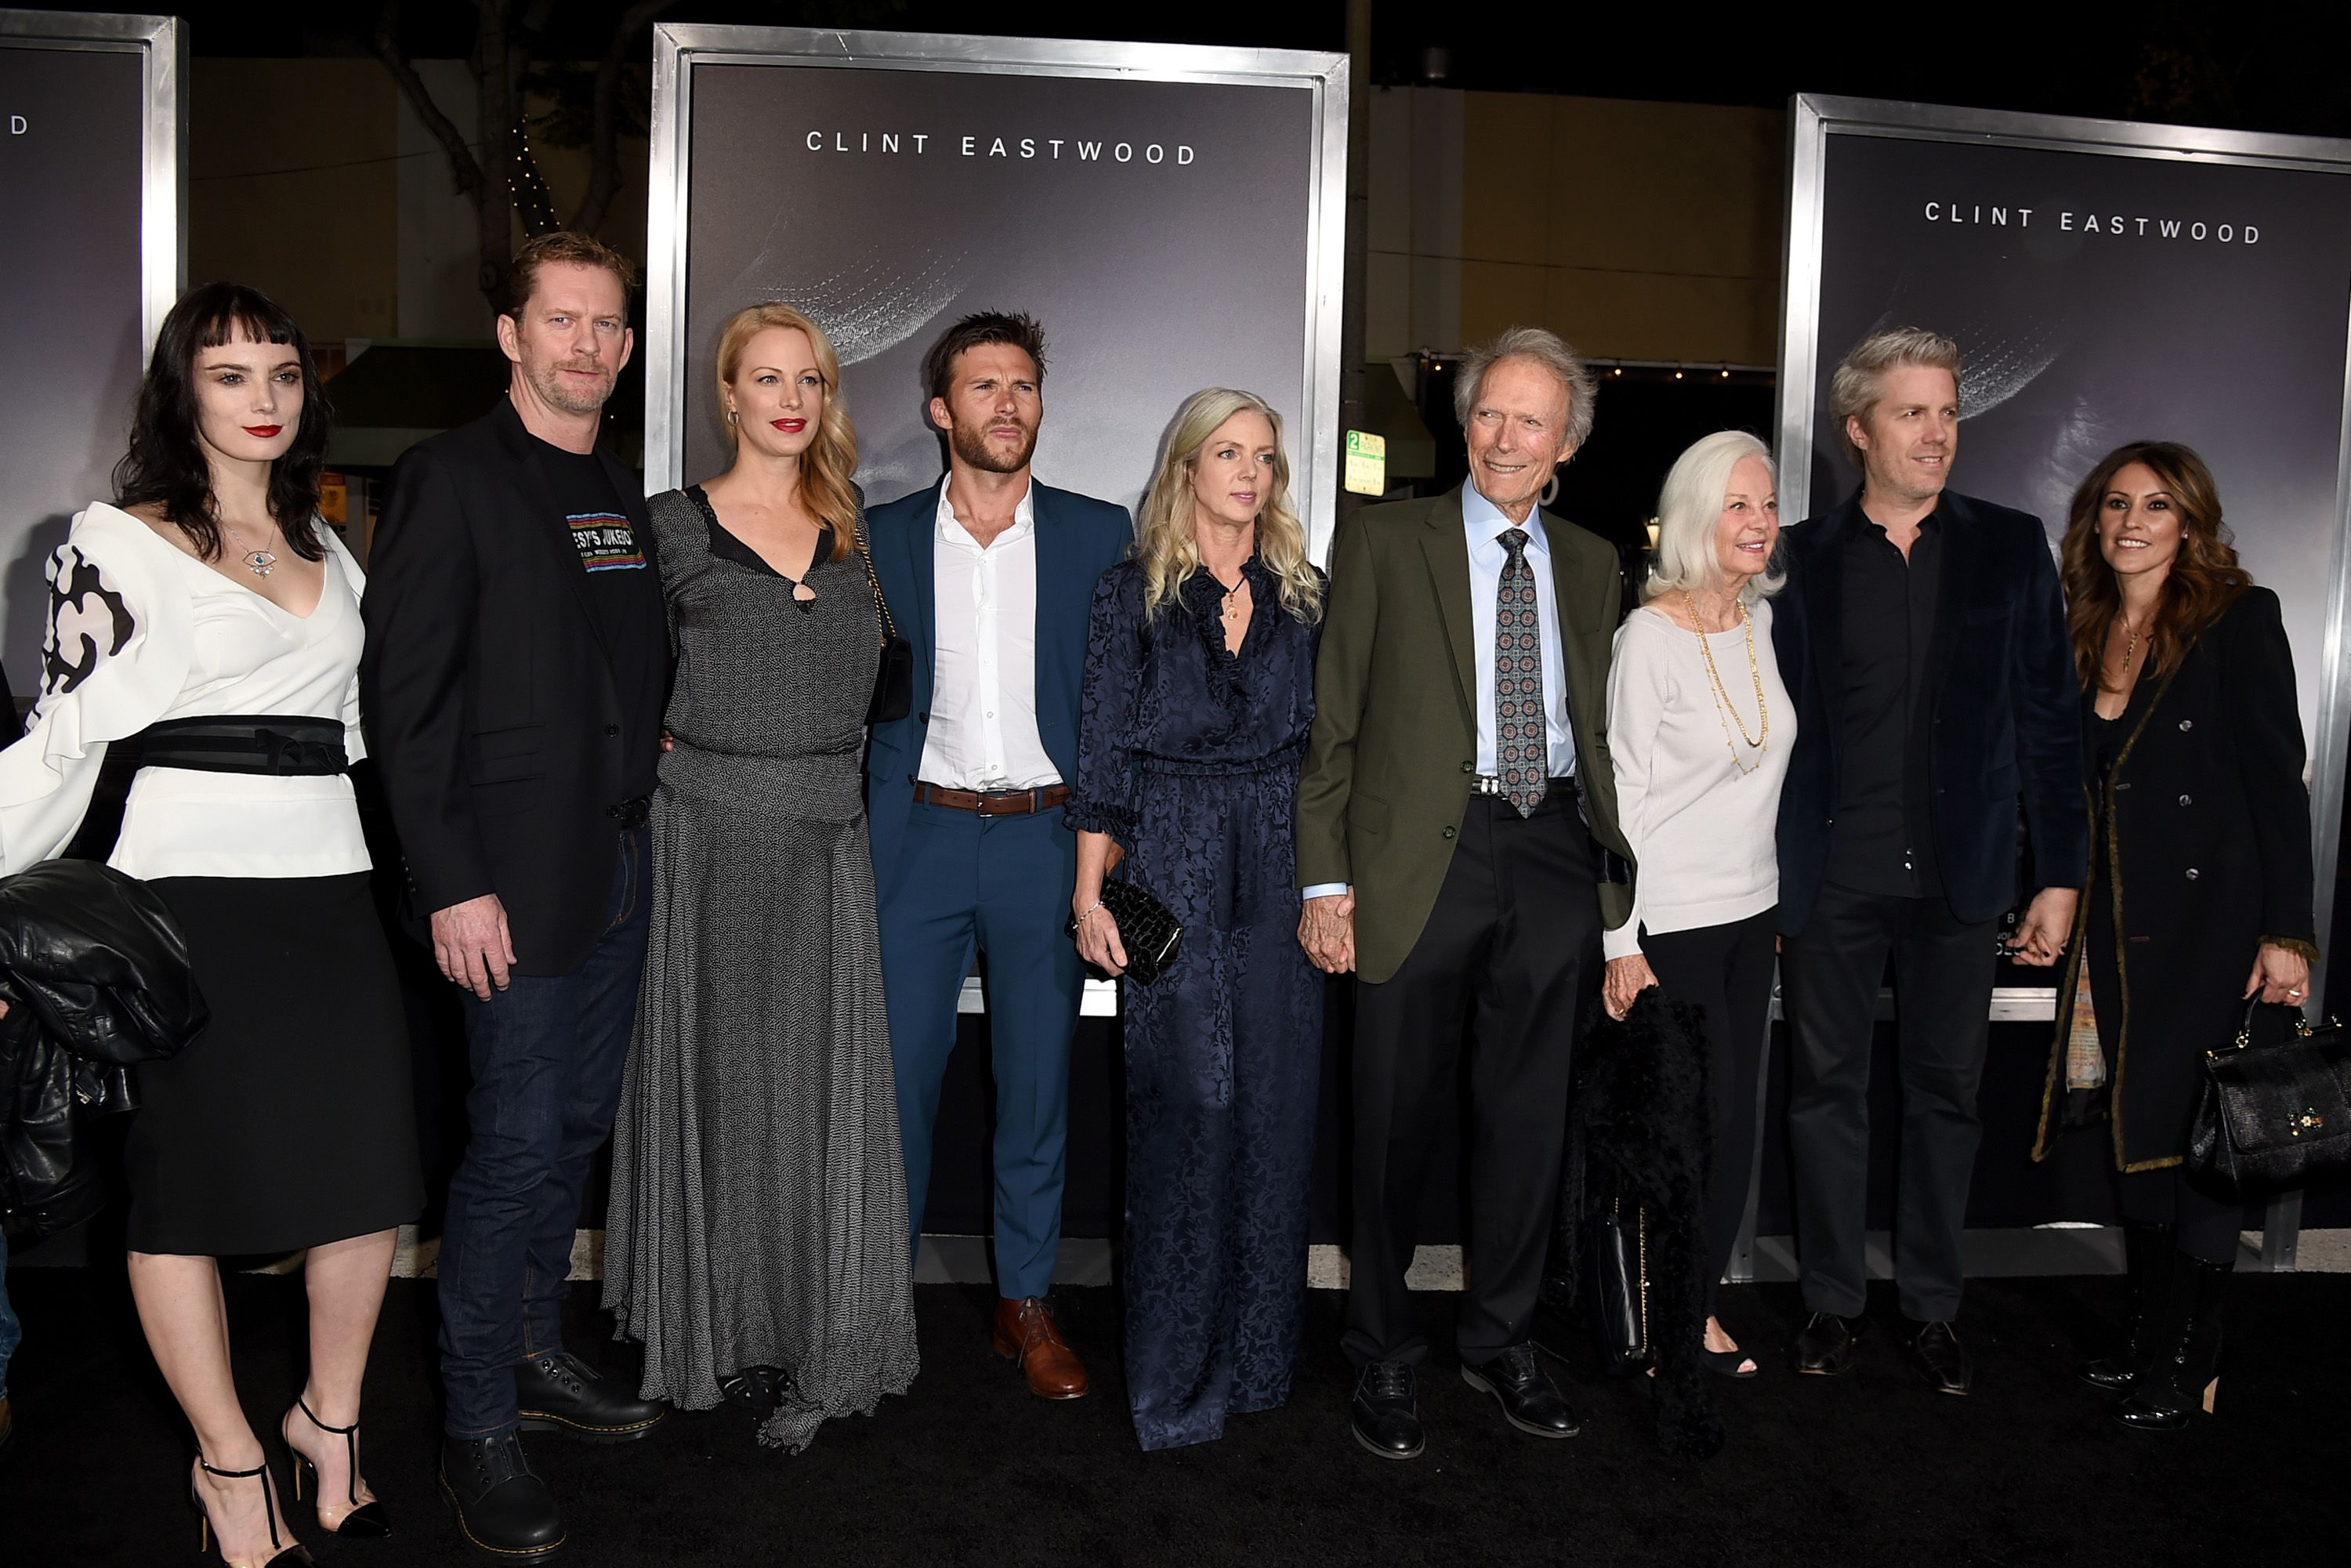 "Graylen Eastwood, Stacy Poitras, Alison Eastwood, Scott Eastwood, Christina Sandera, Clint Eastwood, Maggie Johnson, Kyle Eastwood and Cynthia Ramirez pose at the premiere of Warner Bros. Pictures' ""The Mule"" at the Village Theatre on December 10, 2018 